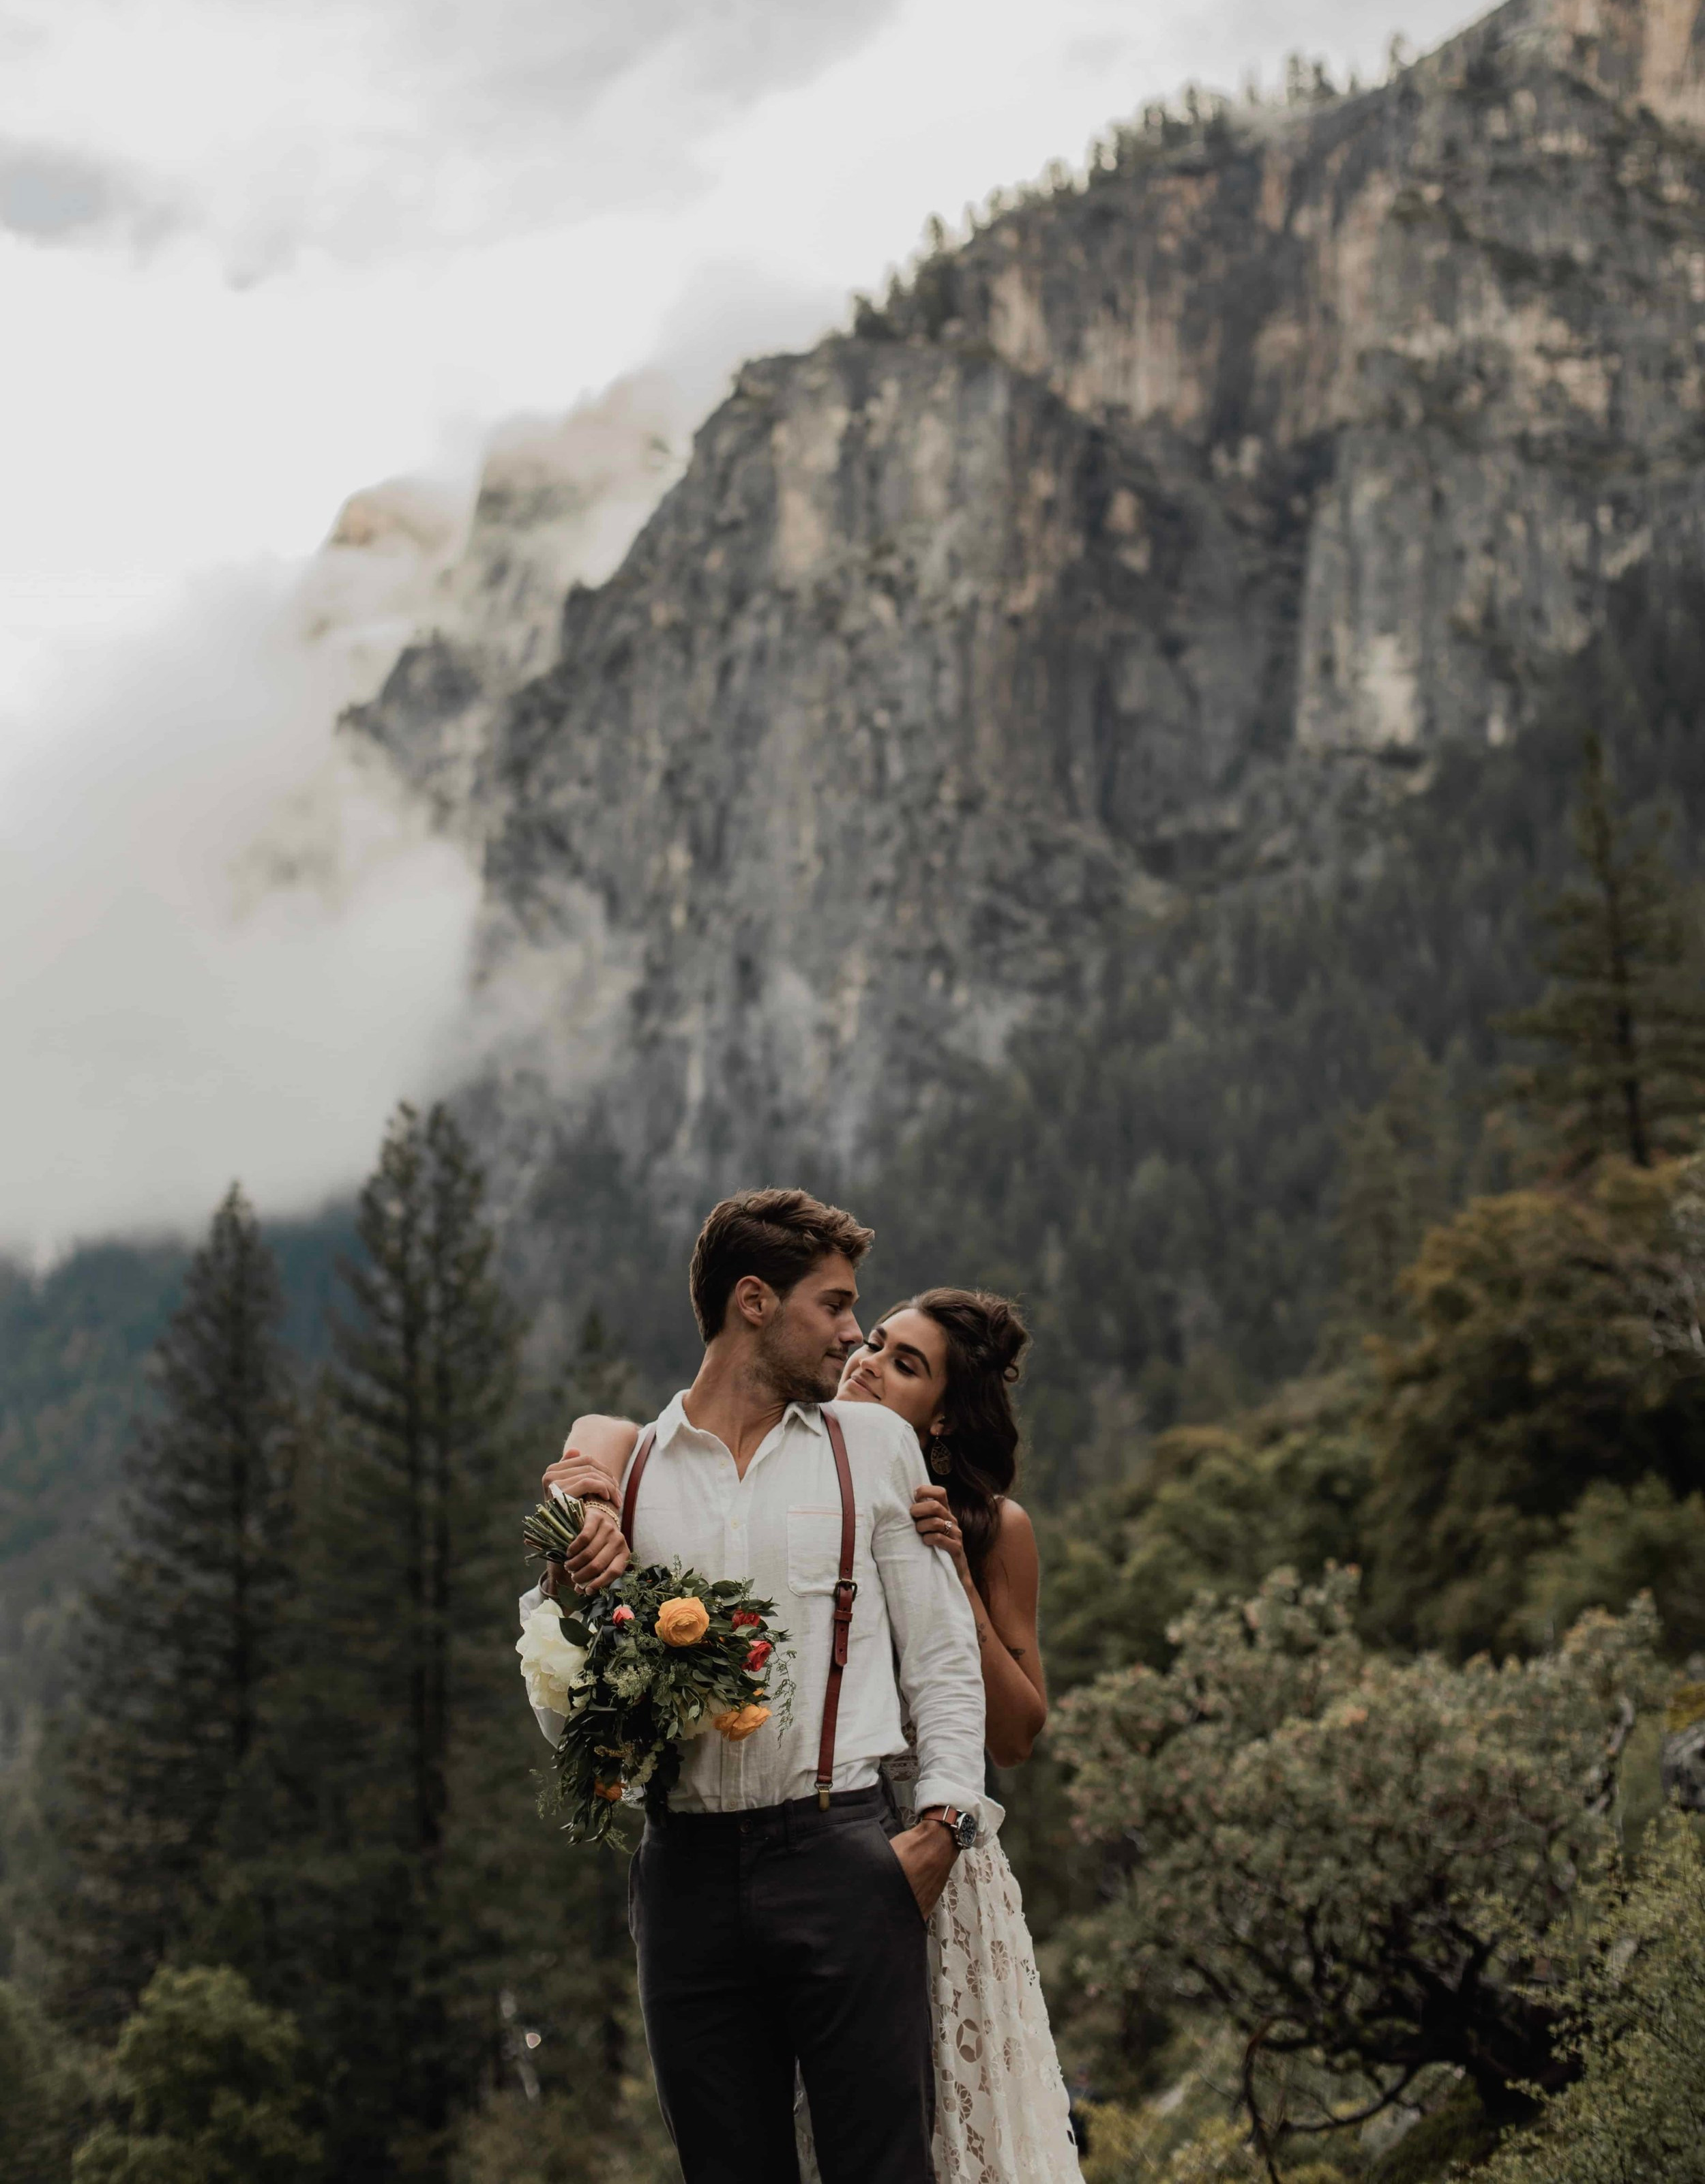 couple eloping in europe in the mountains looking at each other